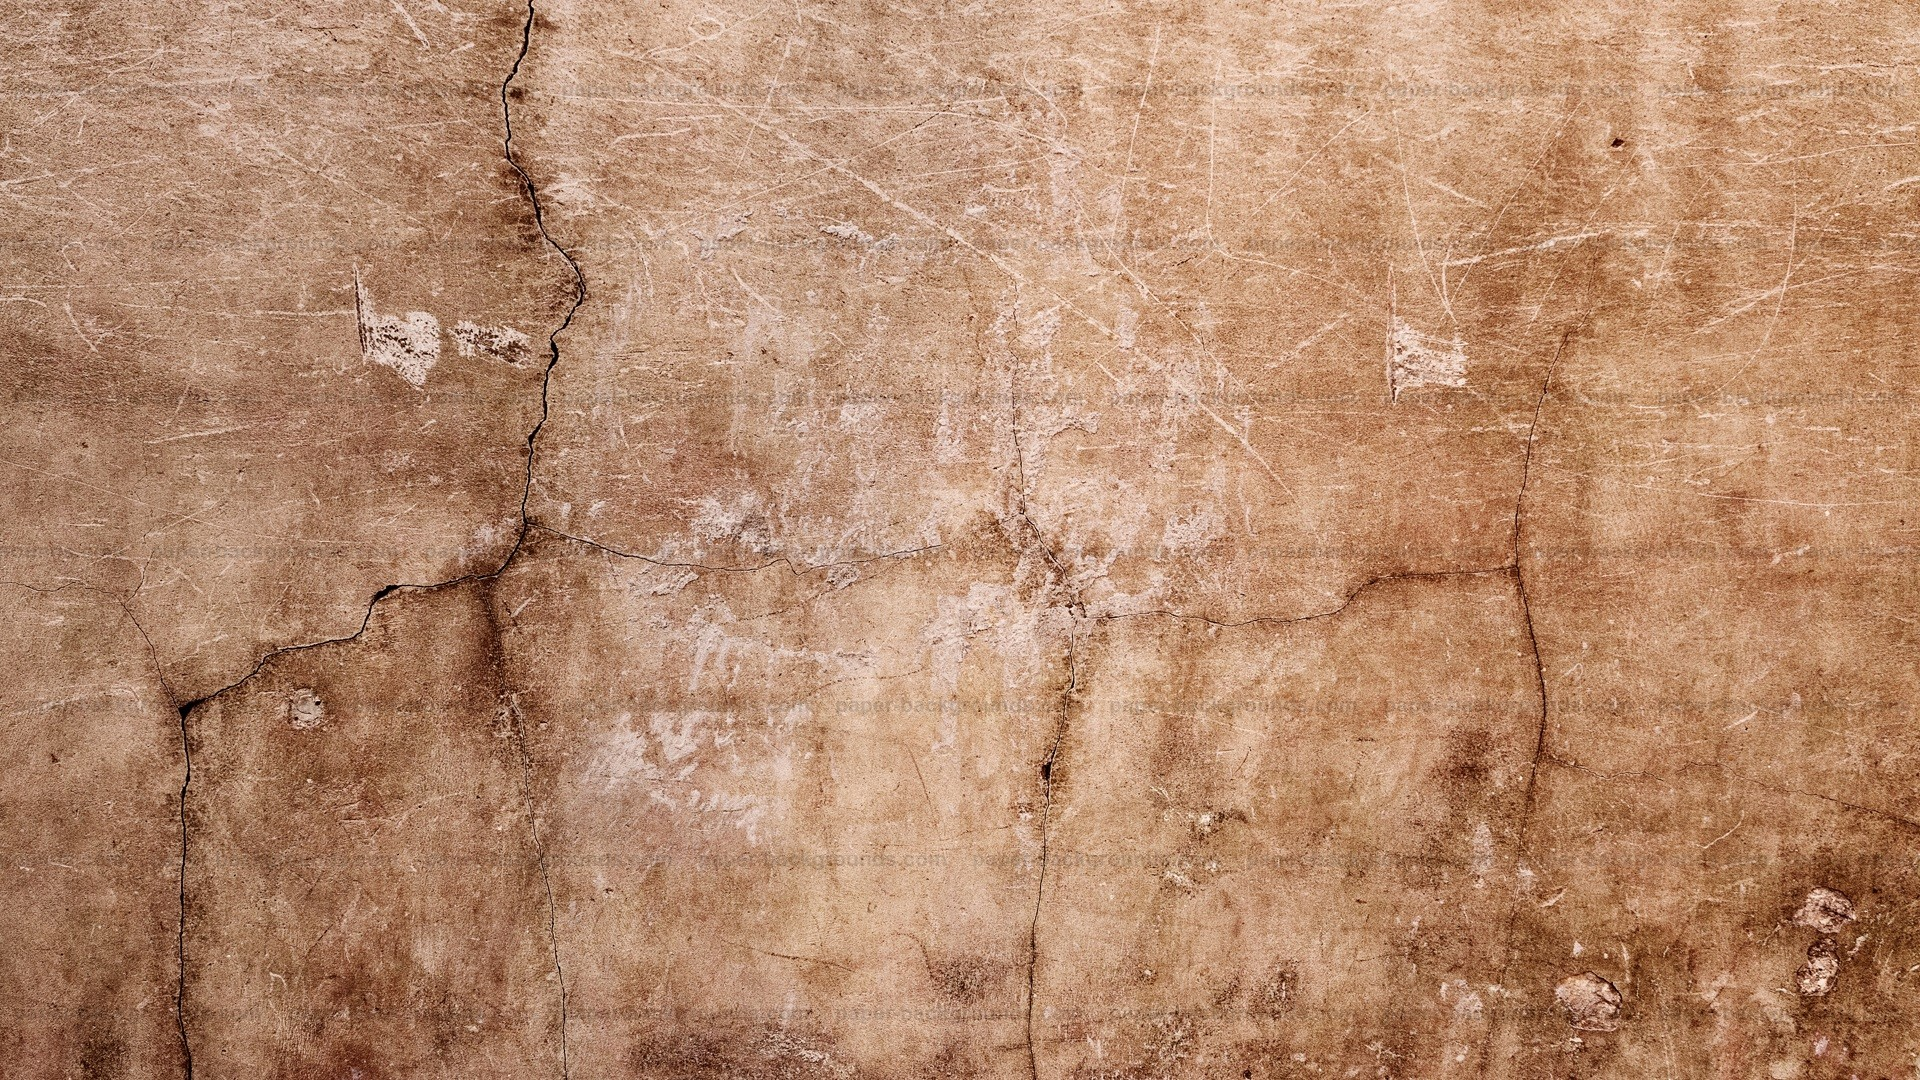 1920x1080, Images Old Wall Texture Background Paper - Old Photo Texture Hd - HD Wallpaper